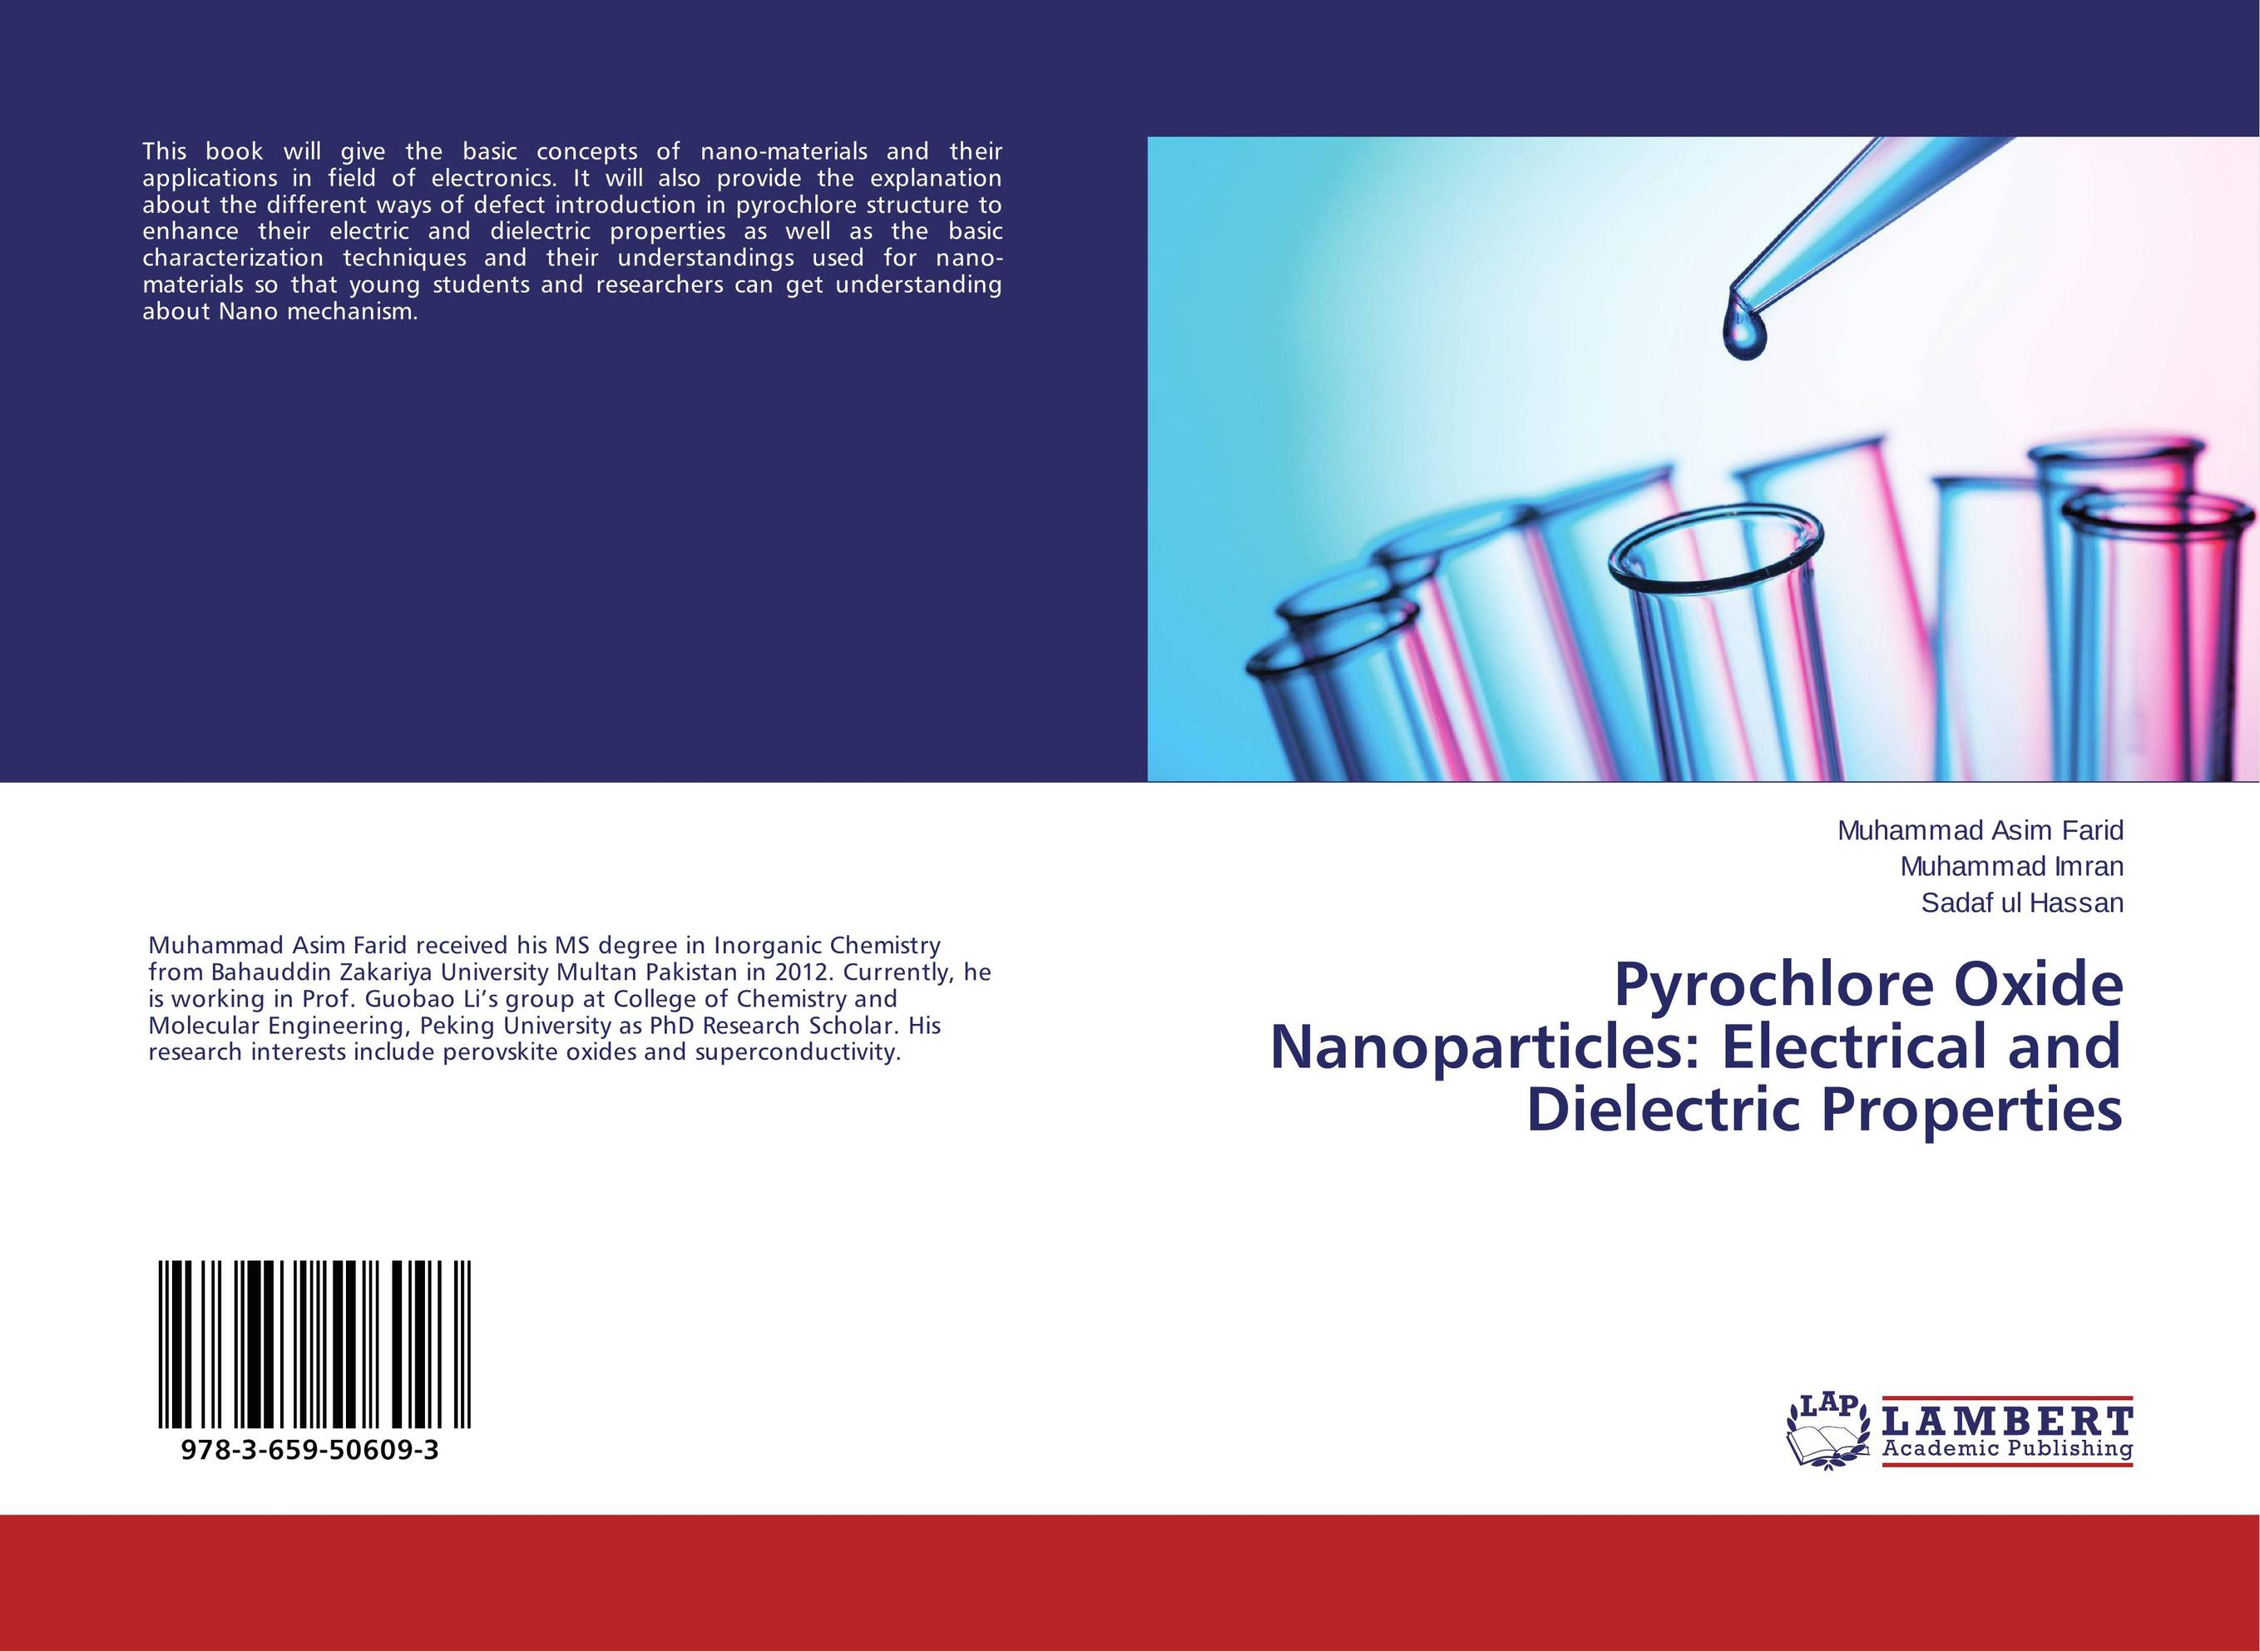 Pyrochlore Oxide Nanoparticles: Electrical and Dielectric Properties juan martinez vega dielectric materials for electrical engineering